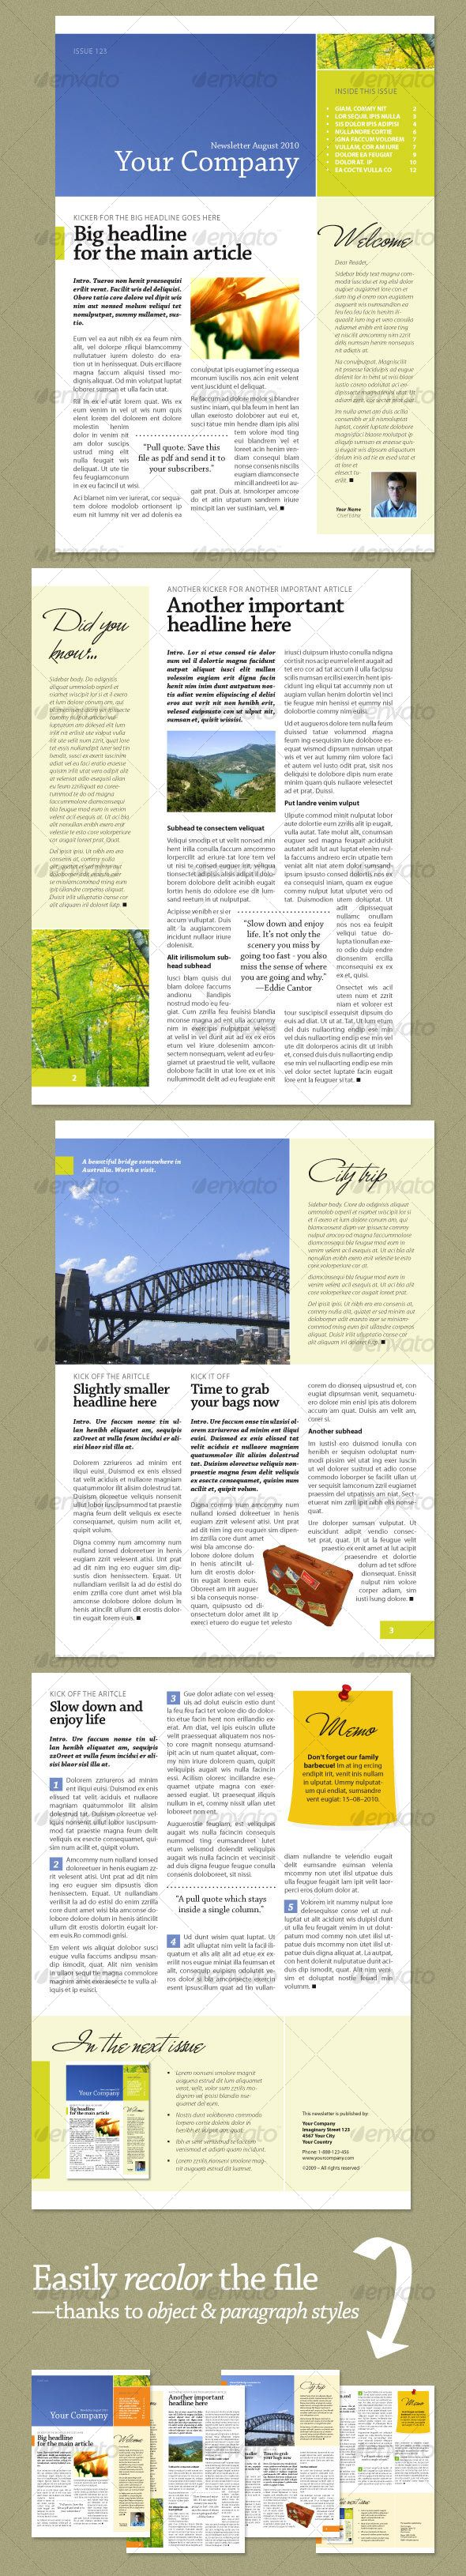 Newsletter Fresh Green (4 pages) - Newsletters Print Templates Download here: https://graphicriver.net/item/newsletter-fresh-green-4-pages/55603?ref=classicdesignp